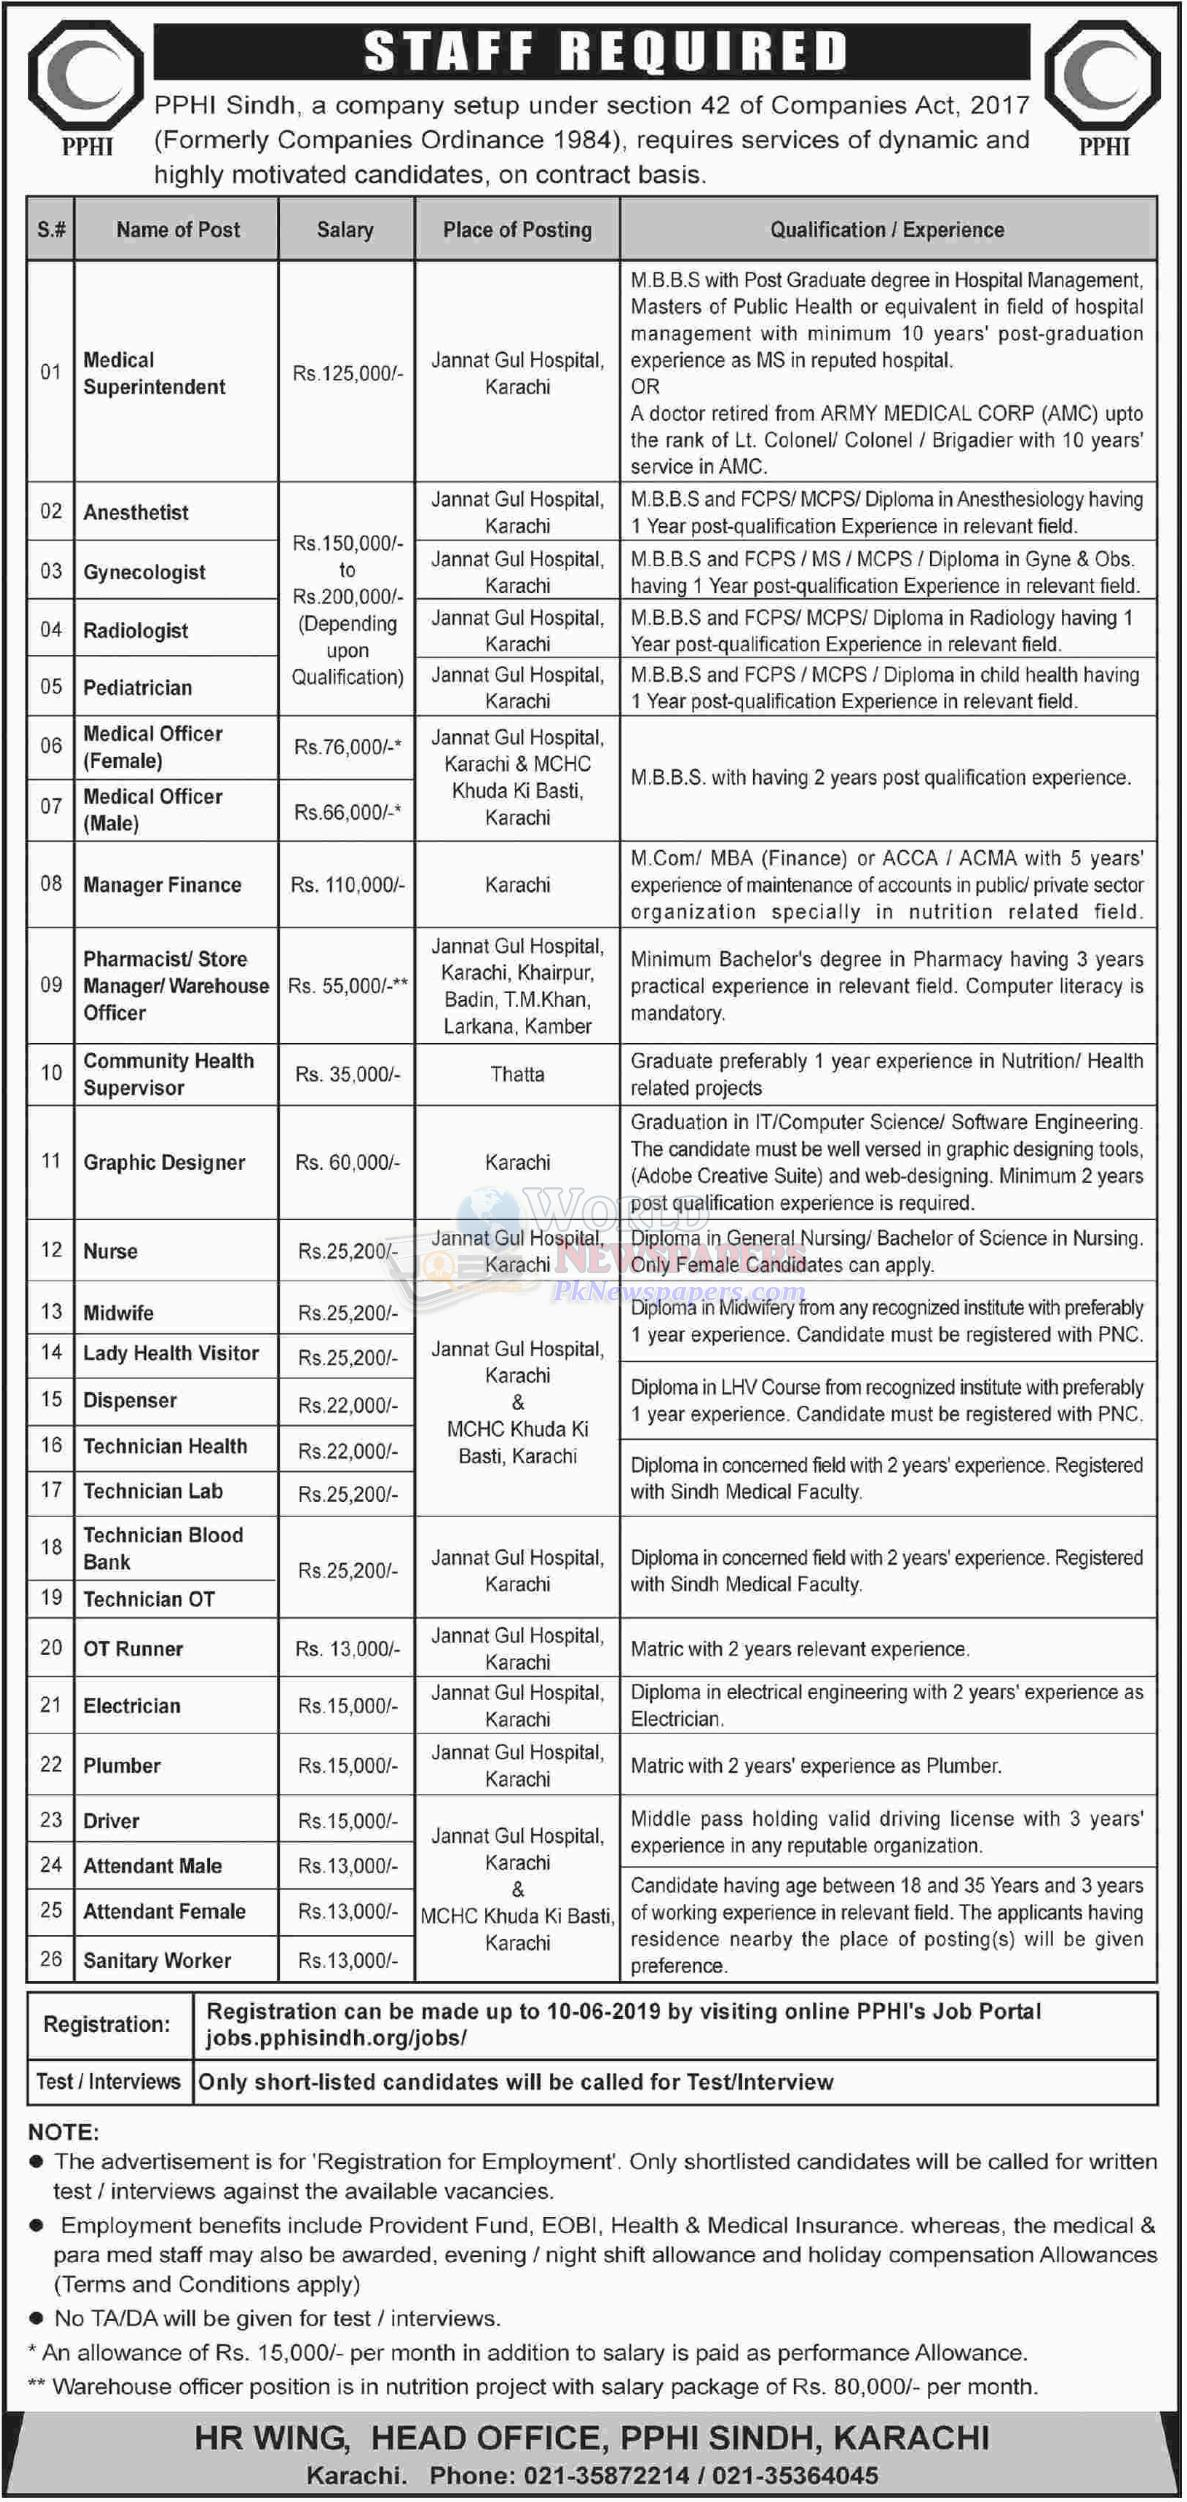 Jobs in PPHI Sindh Karachi HR Wing